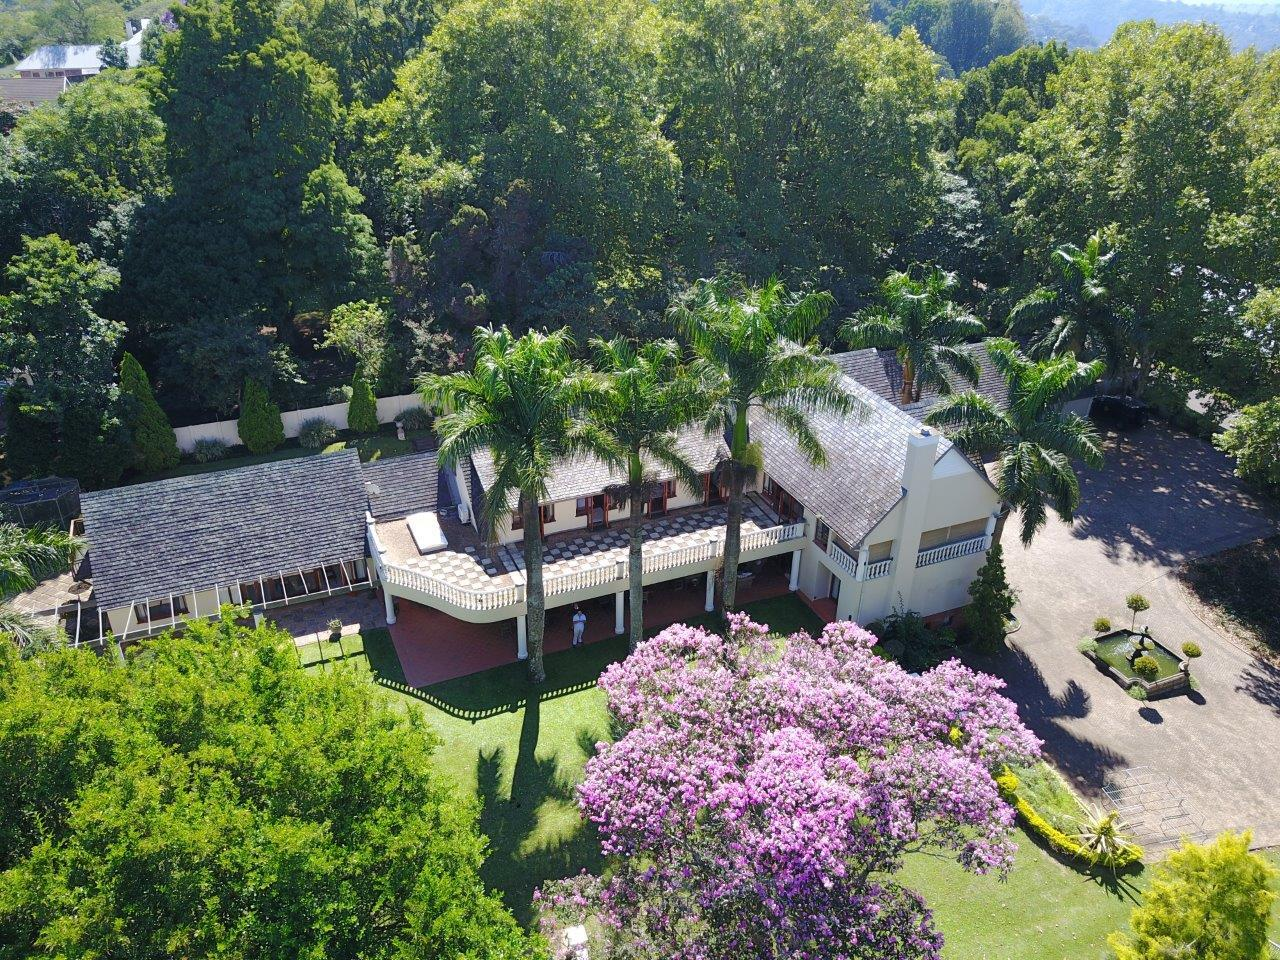 Residence for sale in Kloof, South Africa (Century 21)